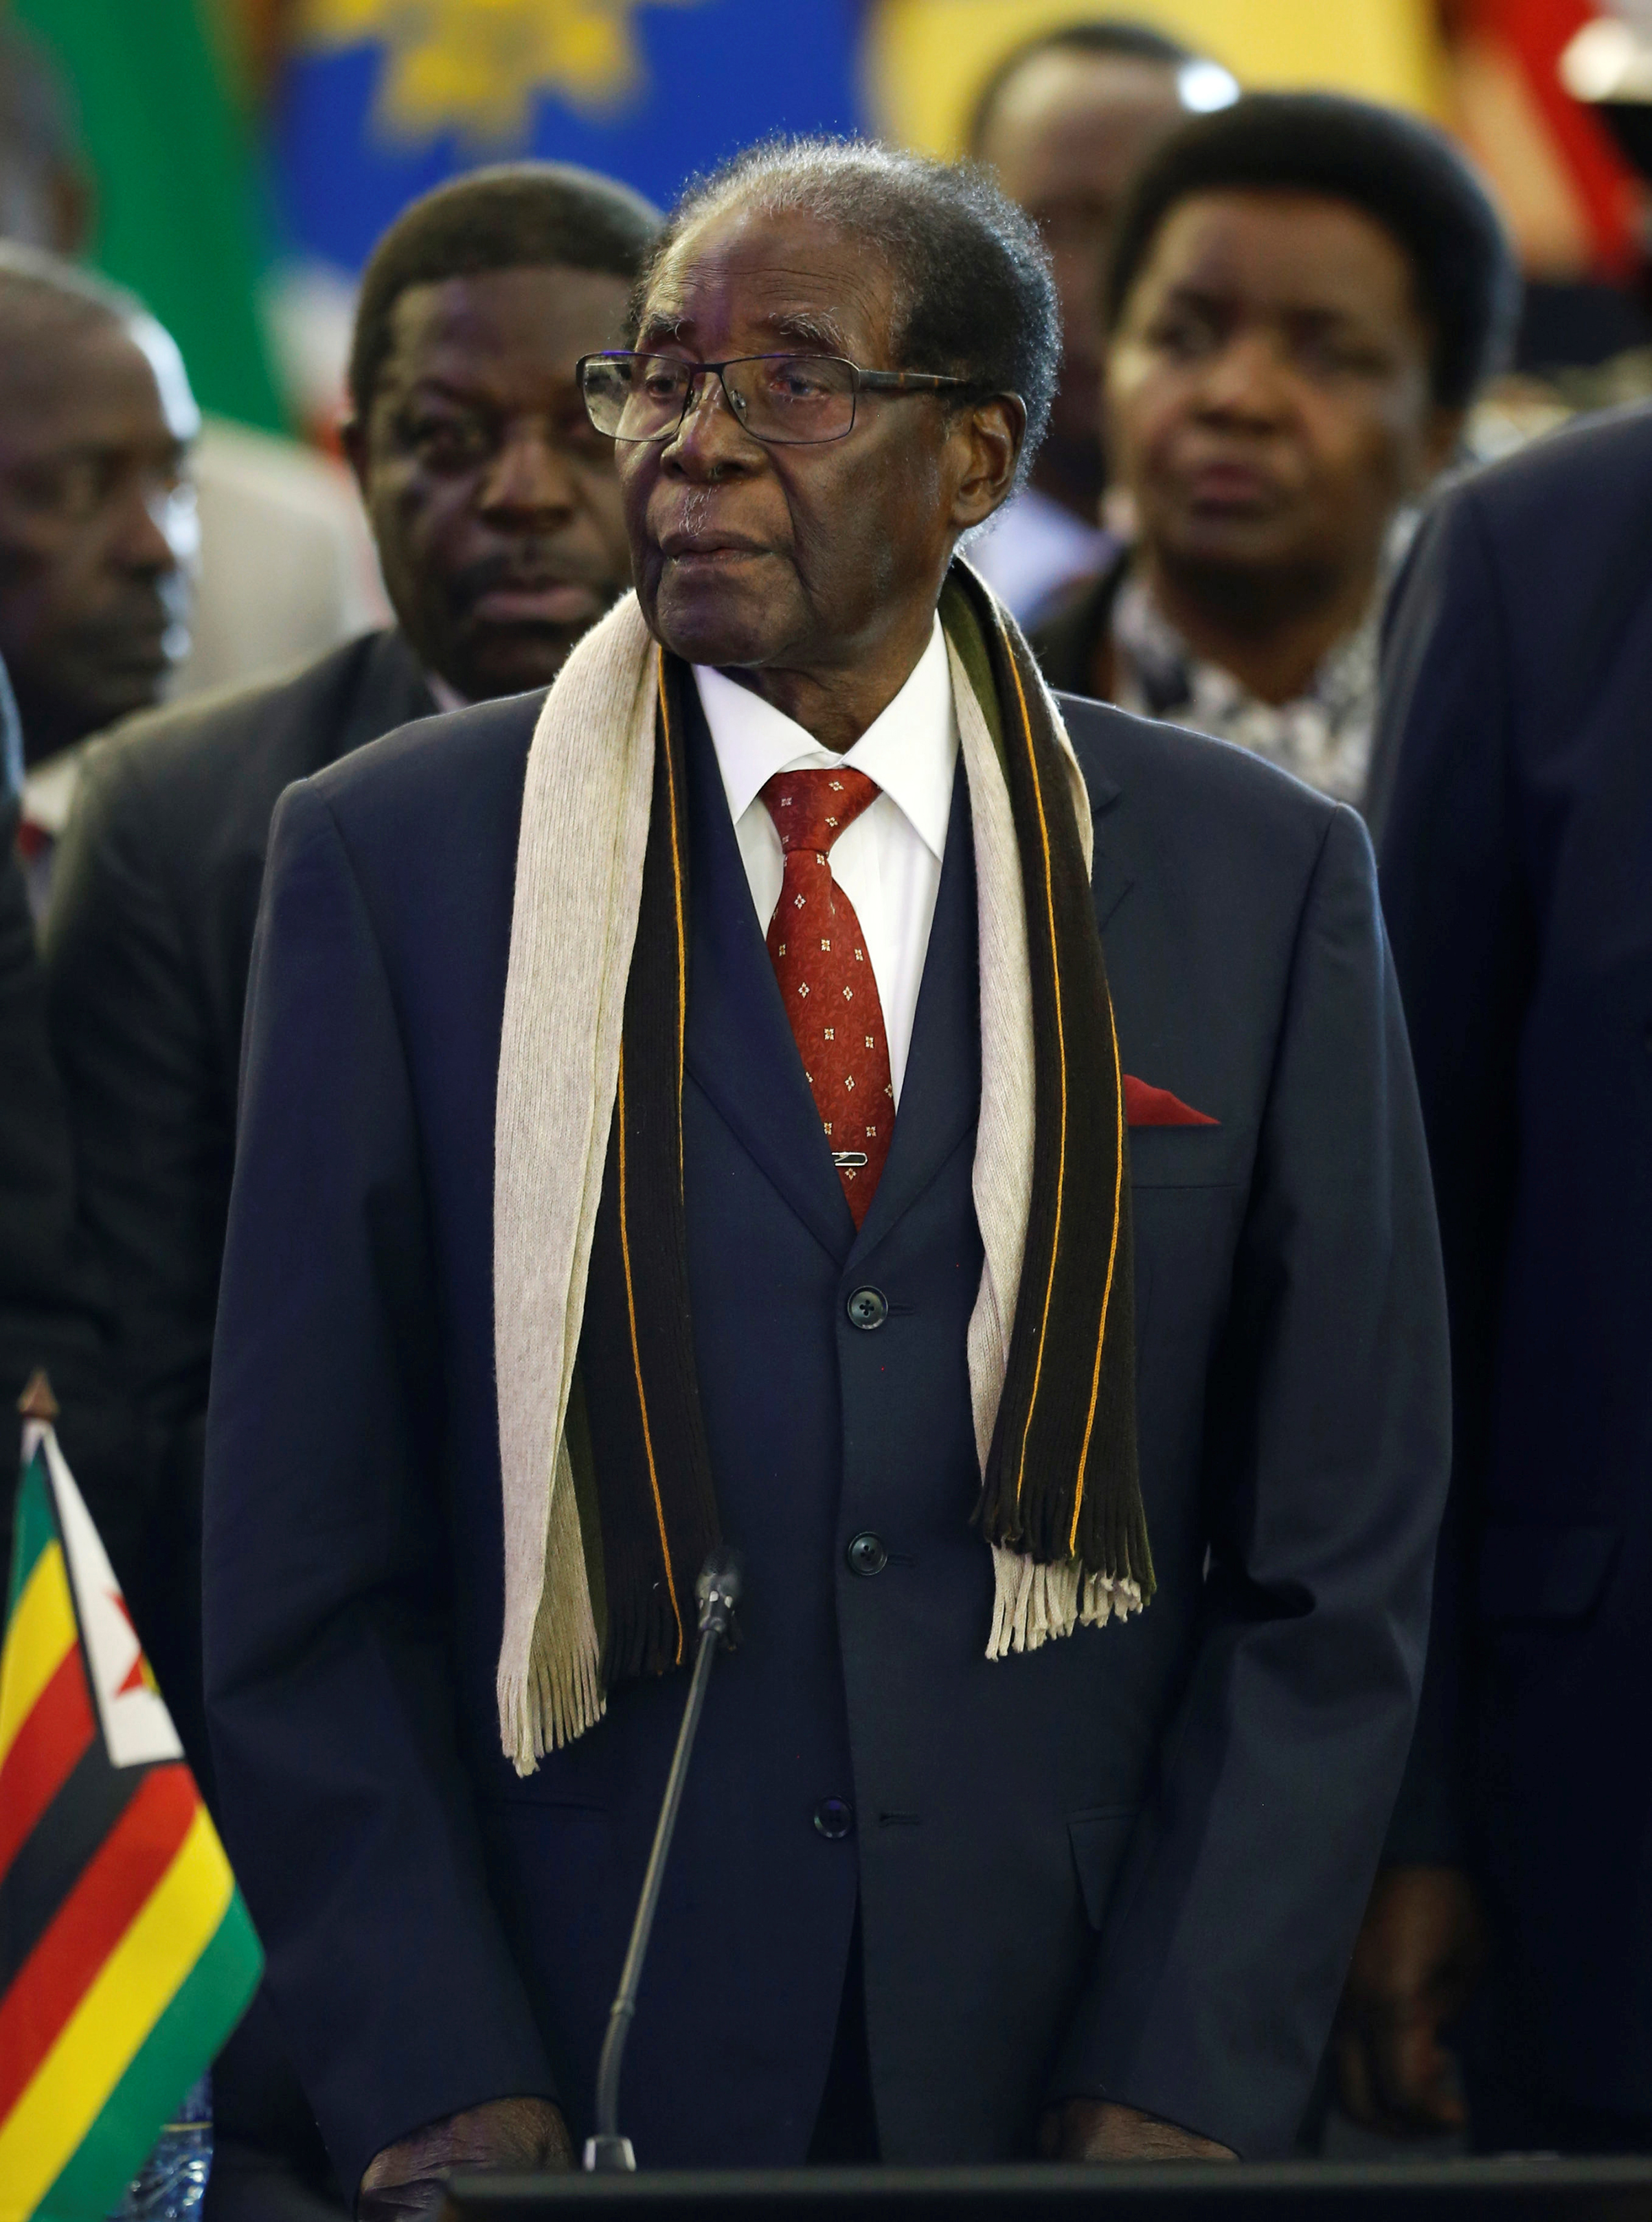 Zimbabwean President Robert Mugabe attends the 37th Ordinary SADC Summit of Heads of State and Government in Pretoria, South Africa, August 19, 2017.